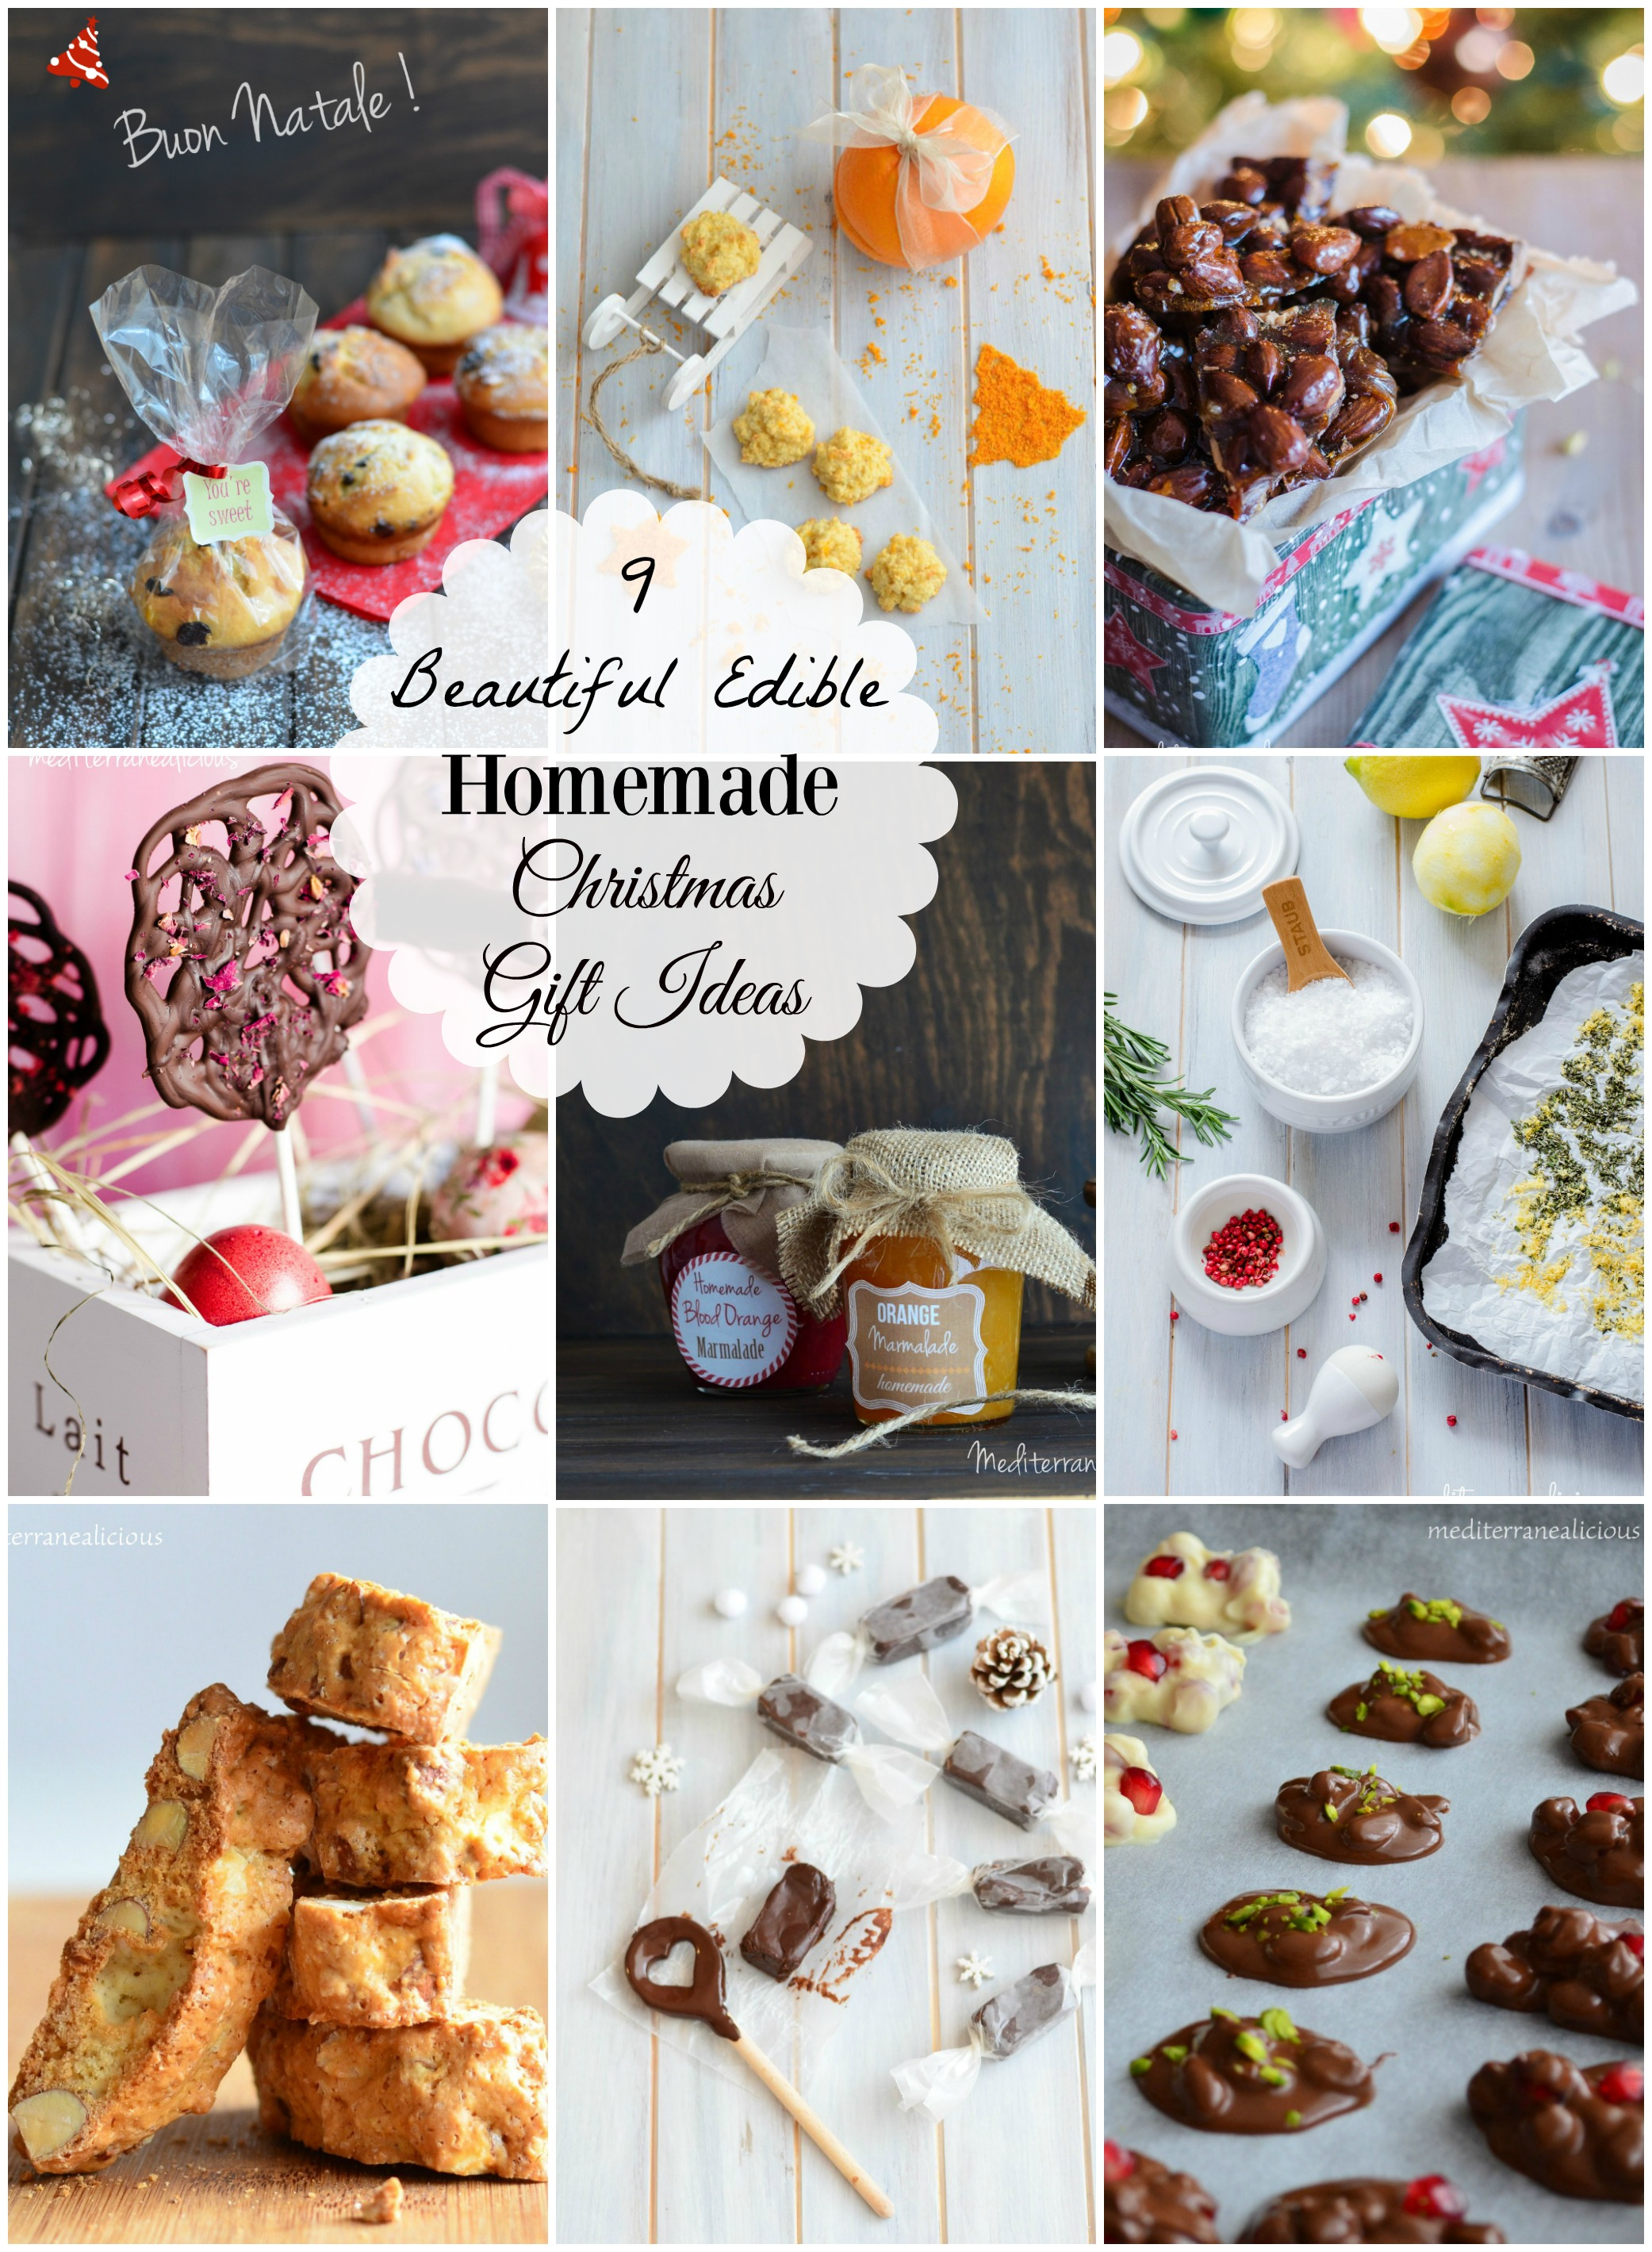 9 beautiful edible christmas gift ideas mediterranealicious for Edible christmas gifts to make in advance